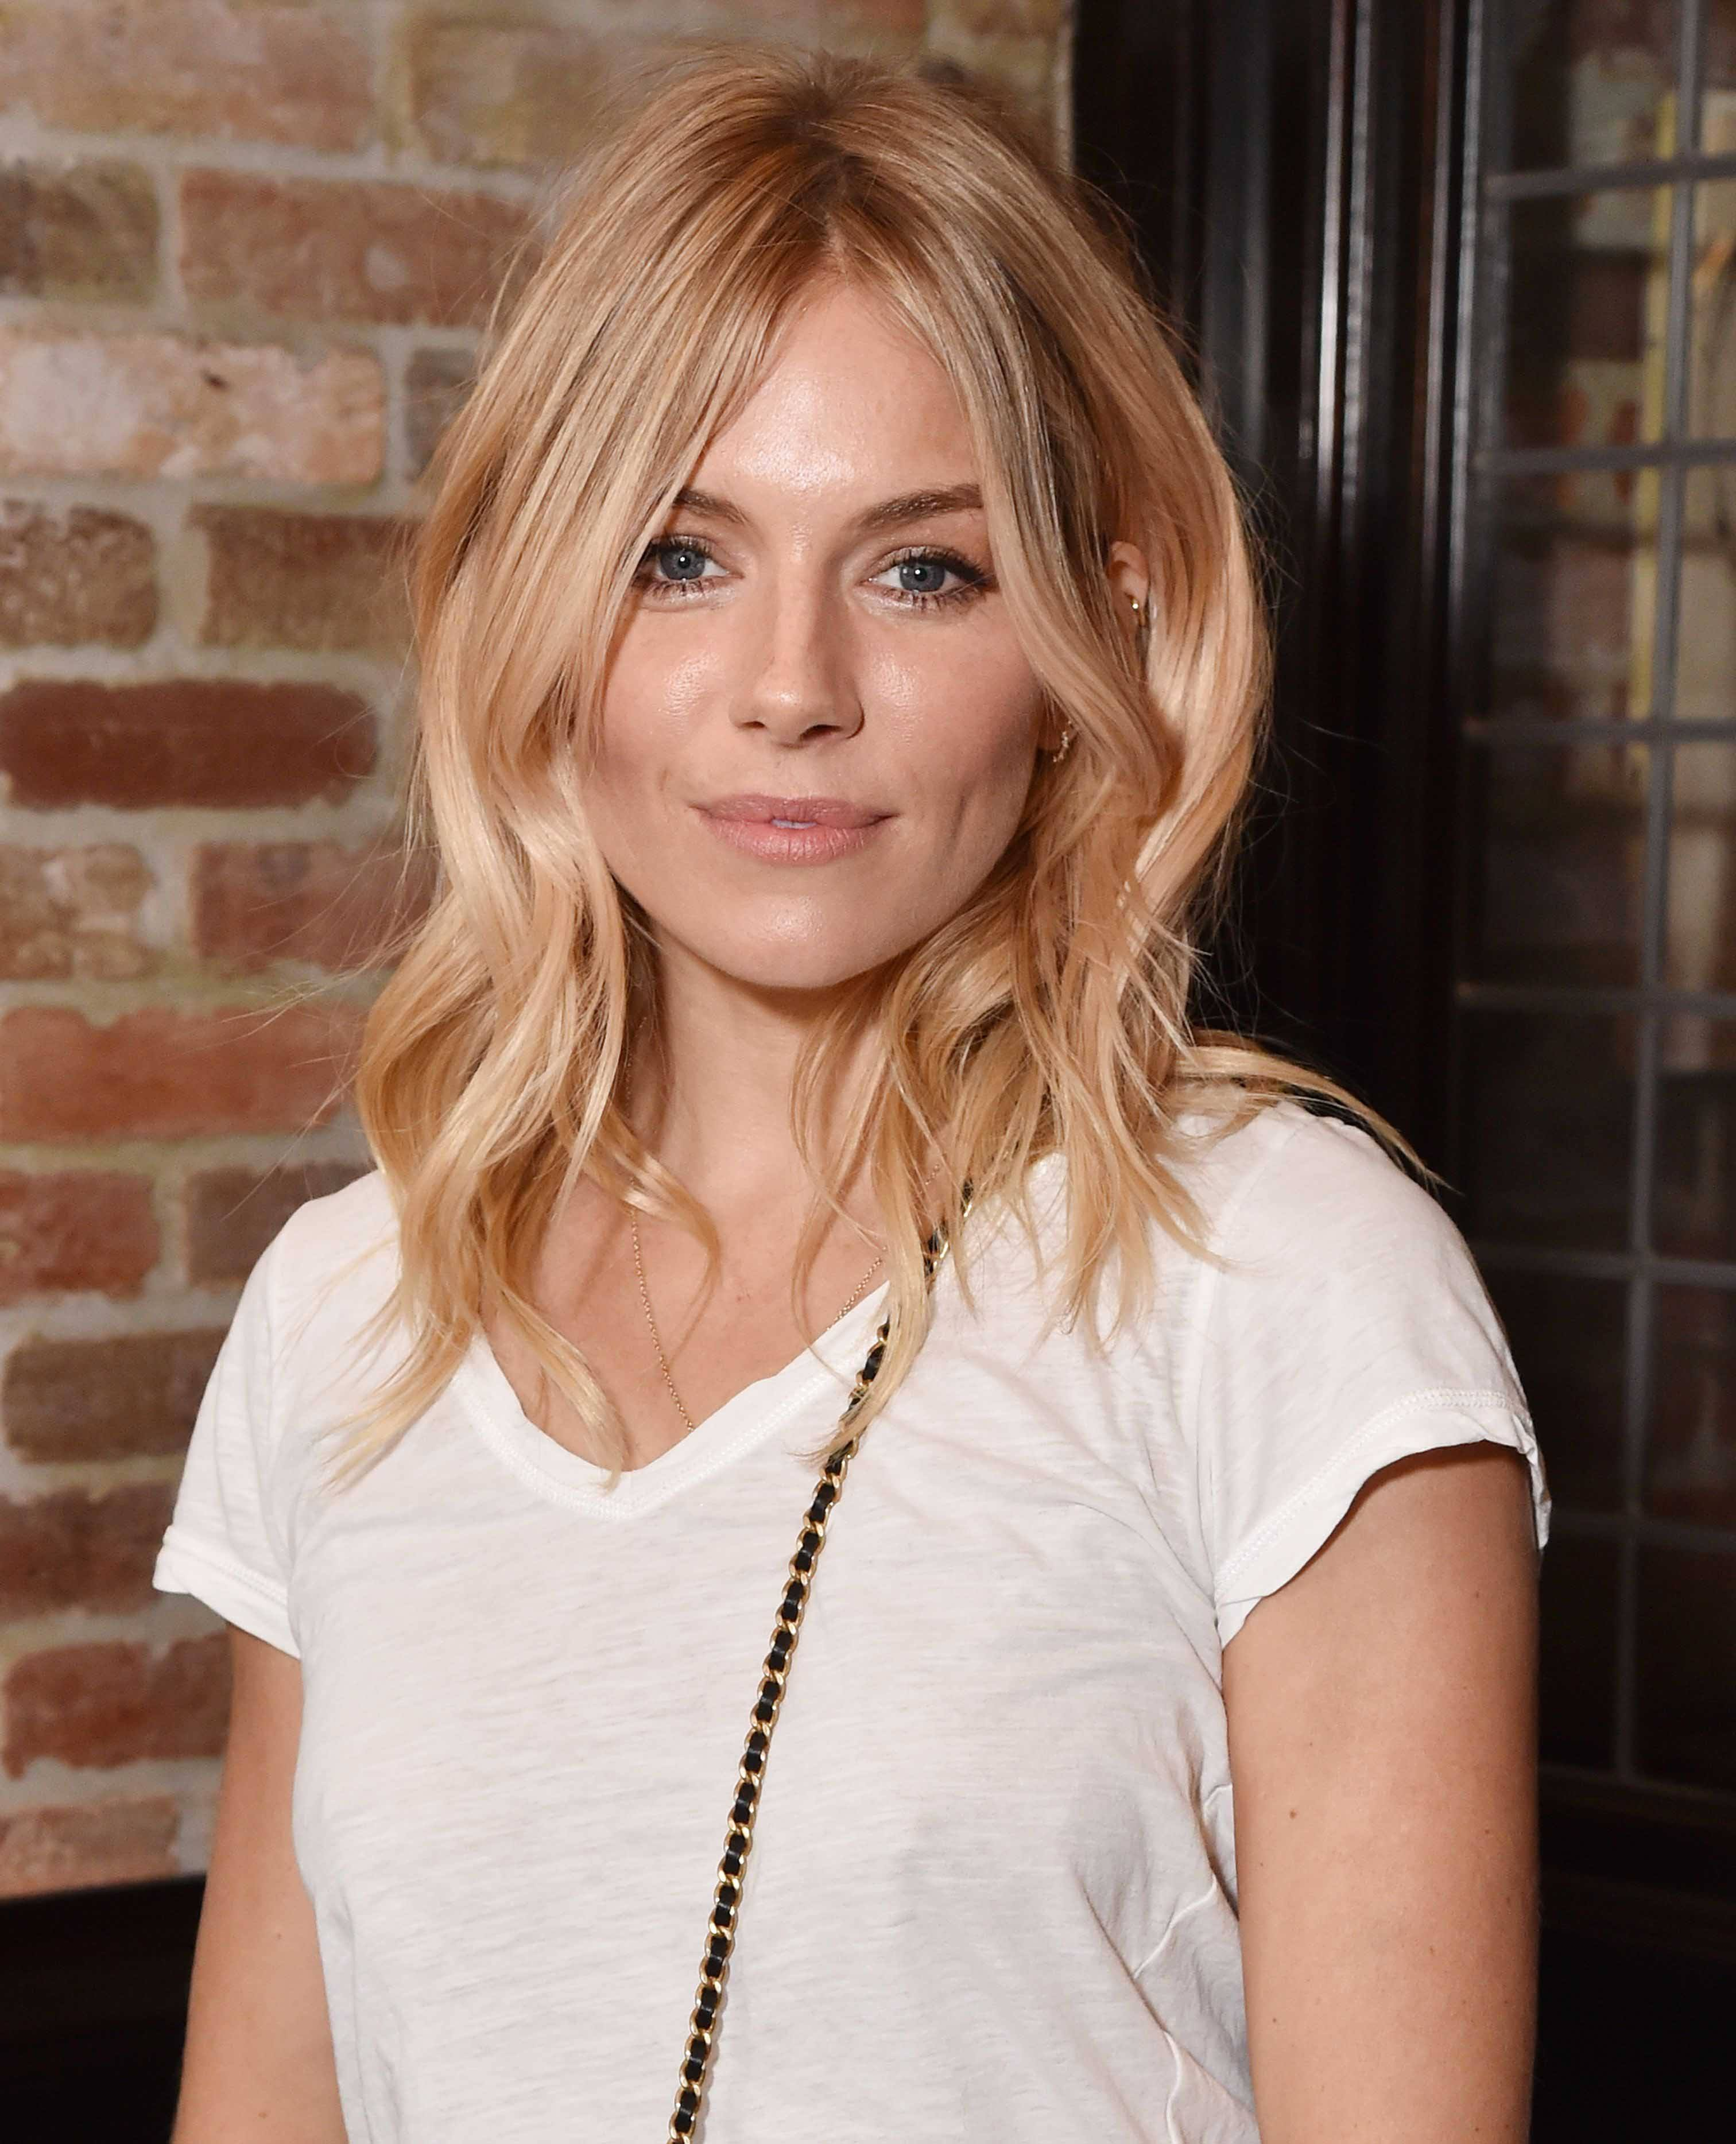 celebrity hair: All Things Hair - IMAGE - 2016 Sienna Miller wavy medium length hair